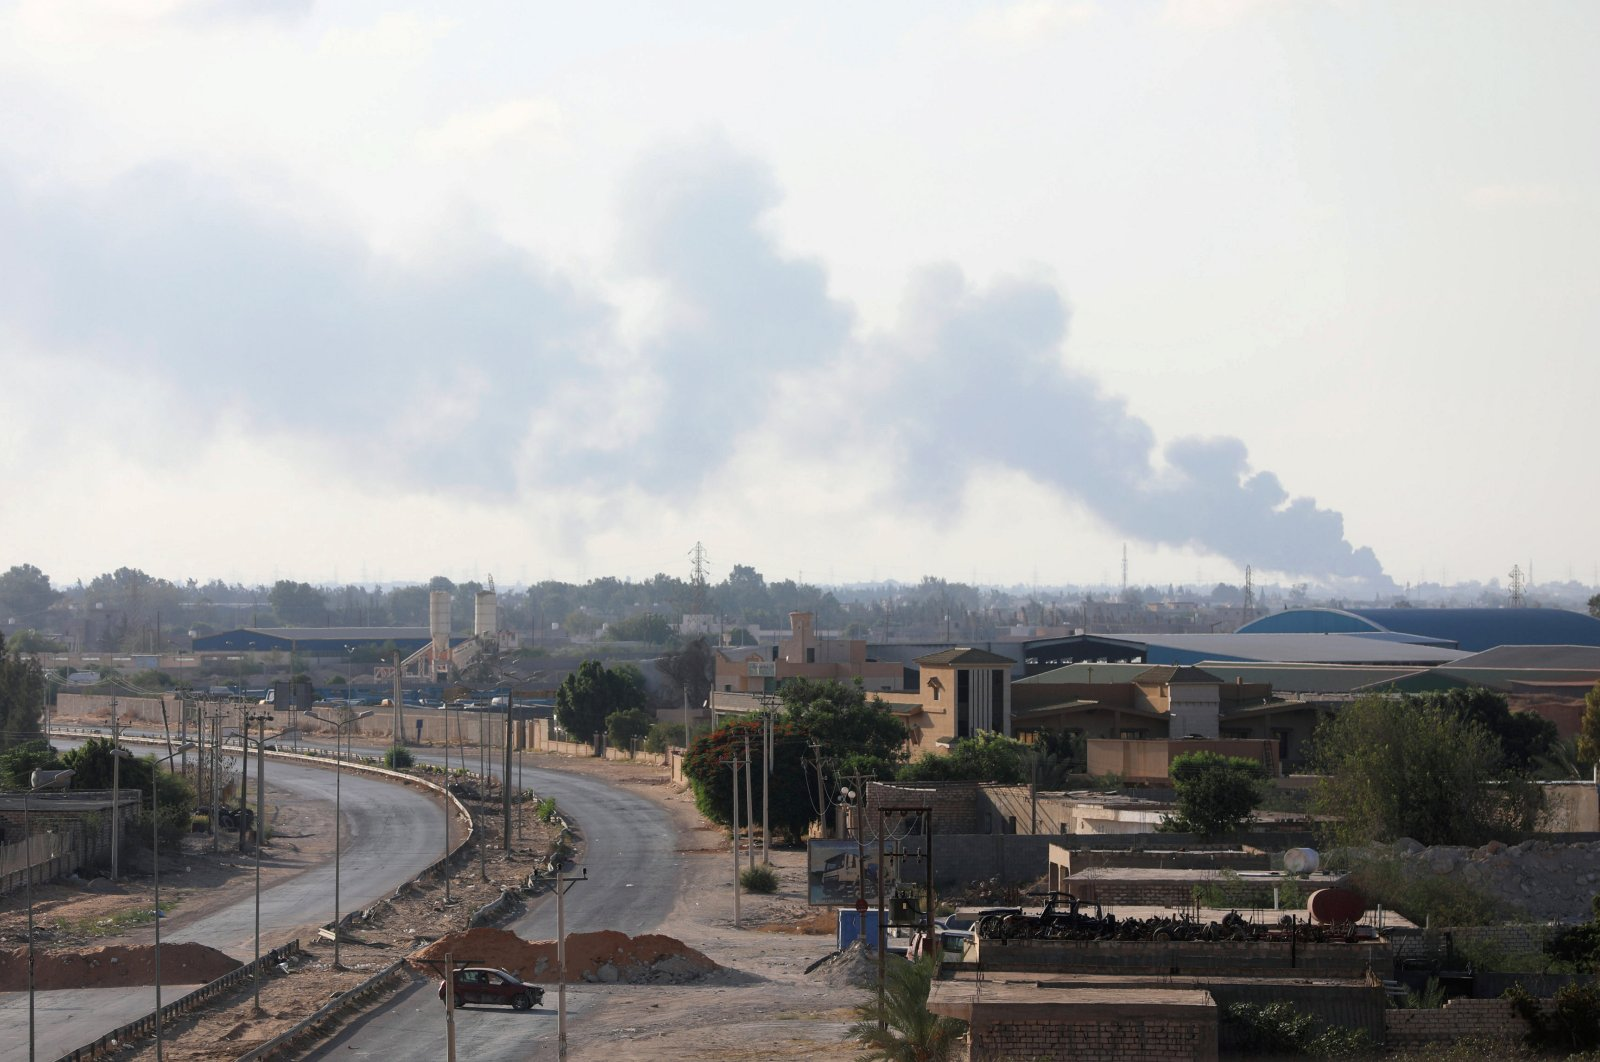 Smoke rises during clashes between forces allied to the internationally recognized government and armed groups in Tripoli, Libya, Sept. 22, 2018. (REUTERS Photo)